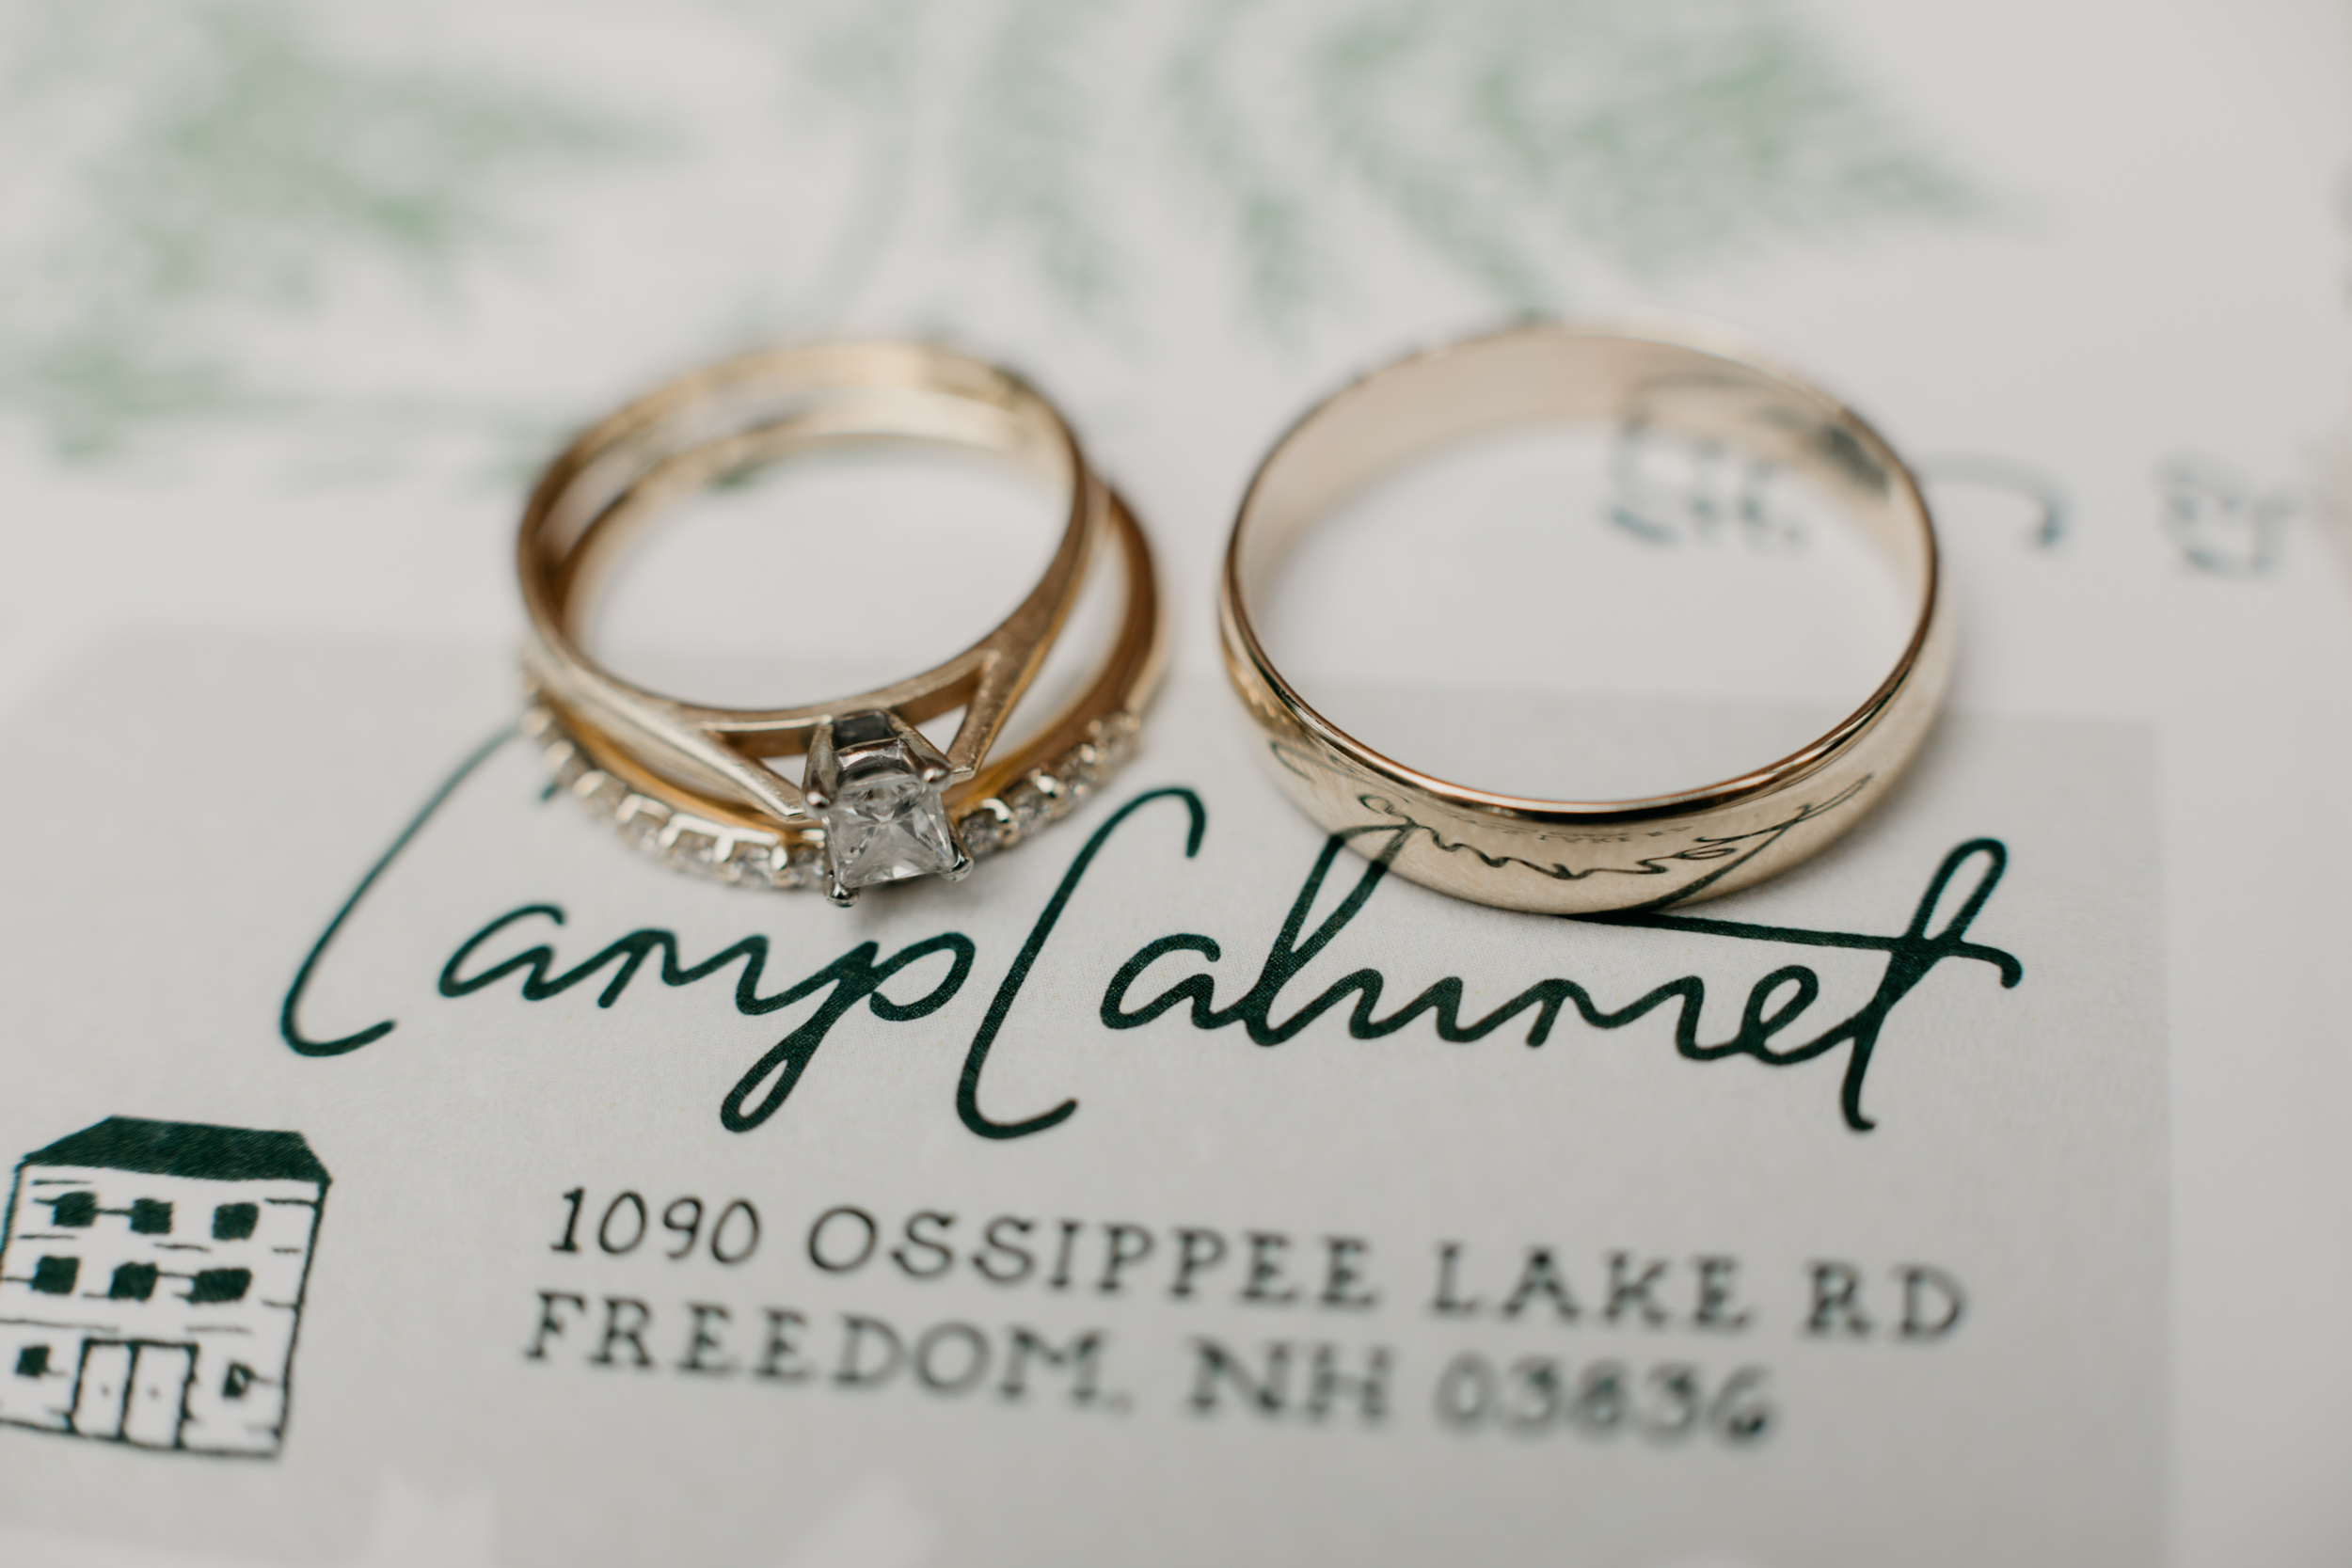 Becca_Adam_Camp_Camulet_Summer_Camp_wedding_Ossipee_New_Hampshire_002.jpg